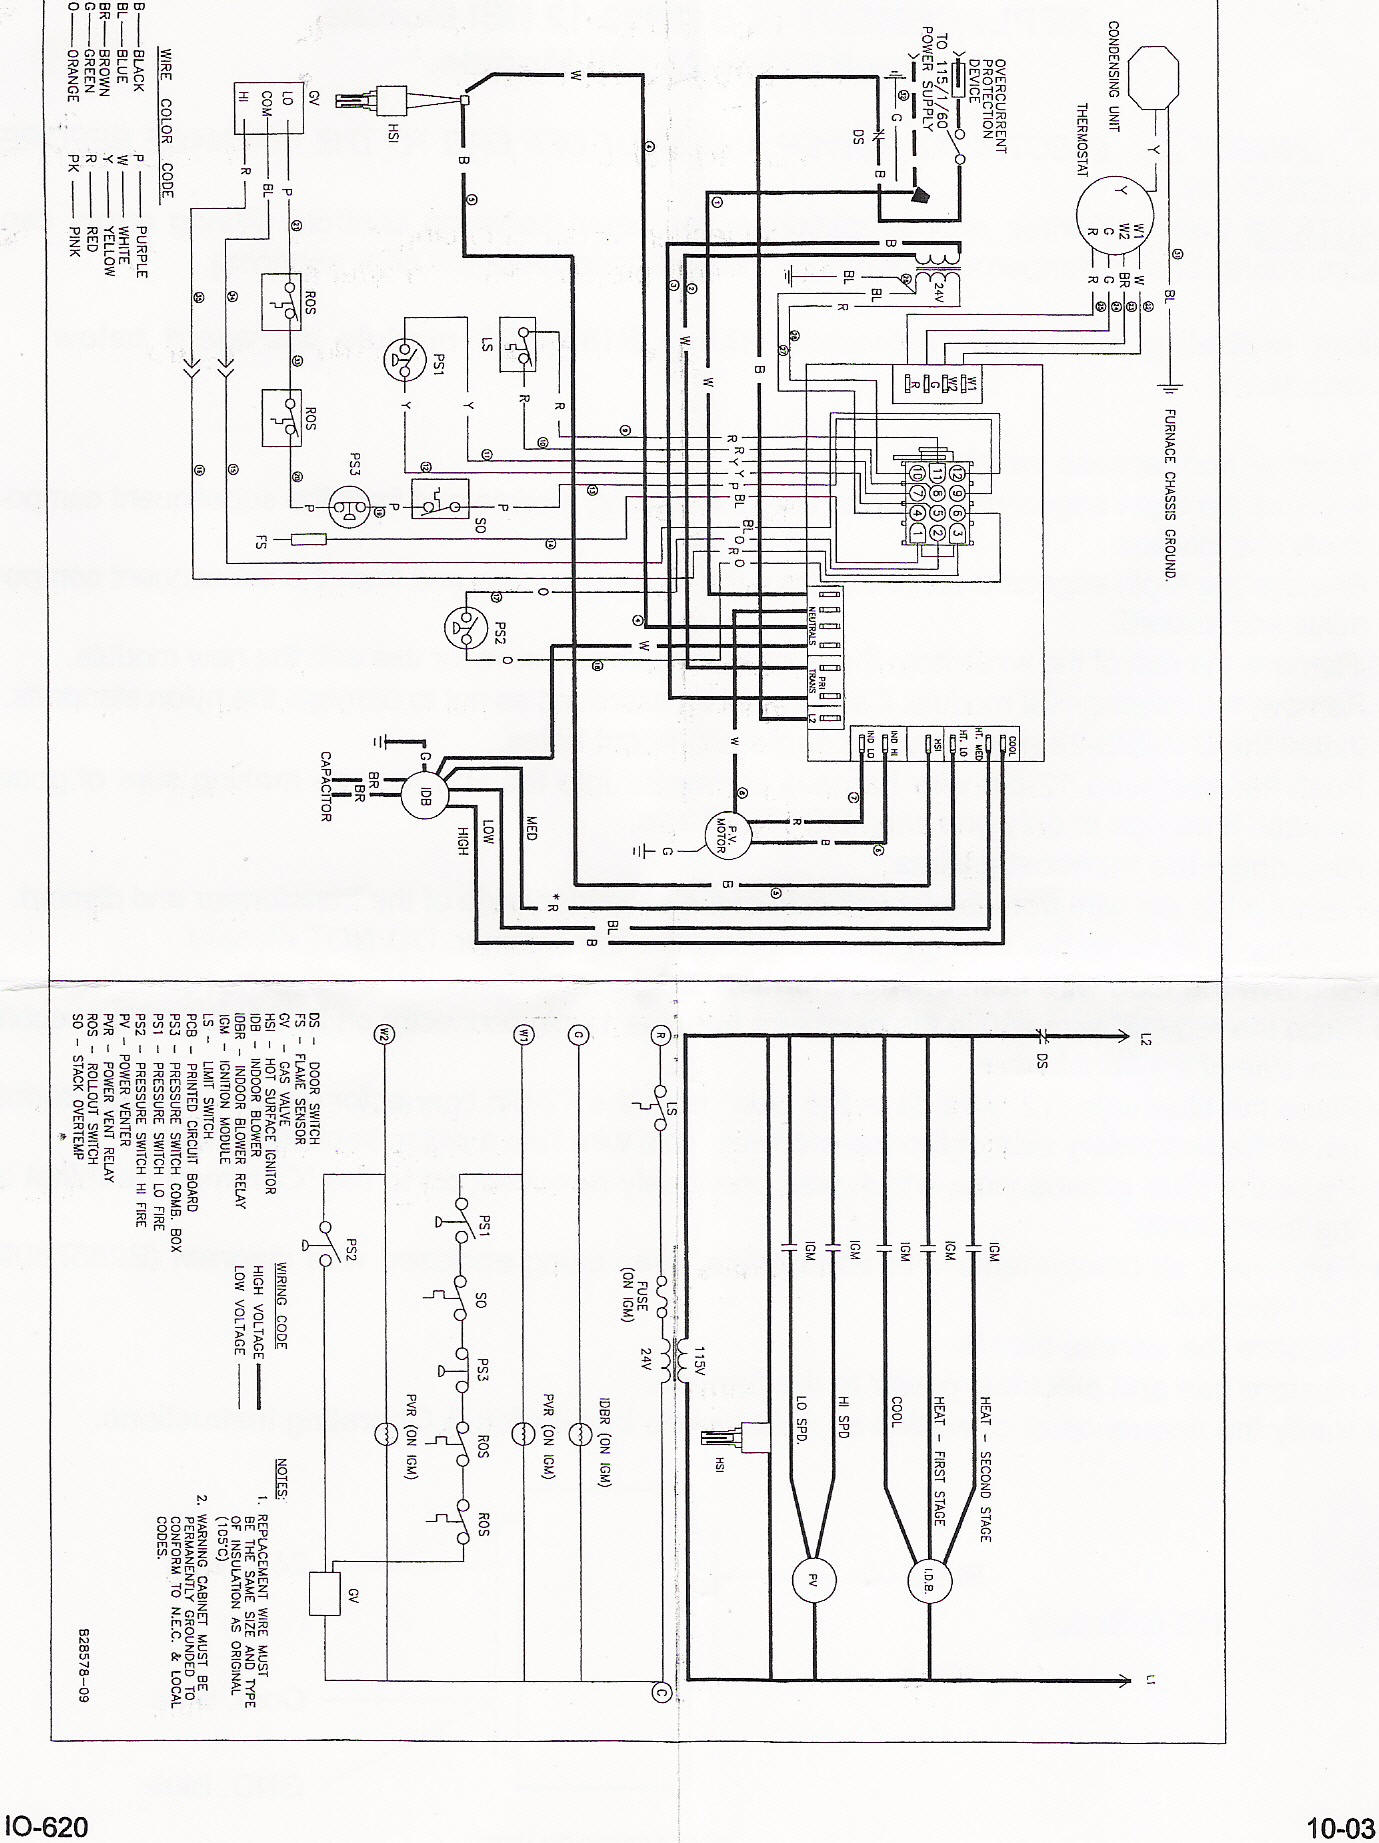 goodma2 instr goodman control board b18099 23 instructions goodman furnace manual wiring diagram at reclaimingppi.co